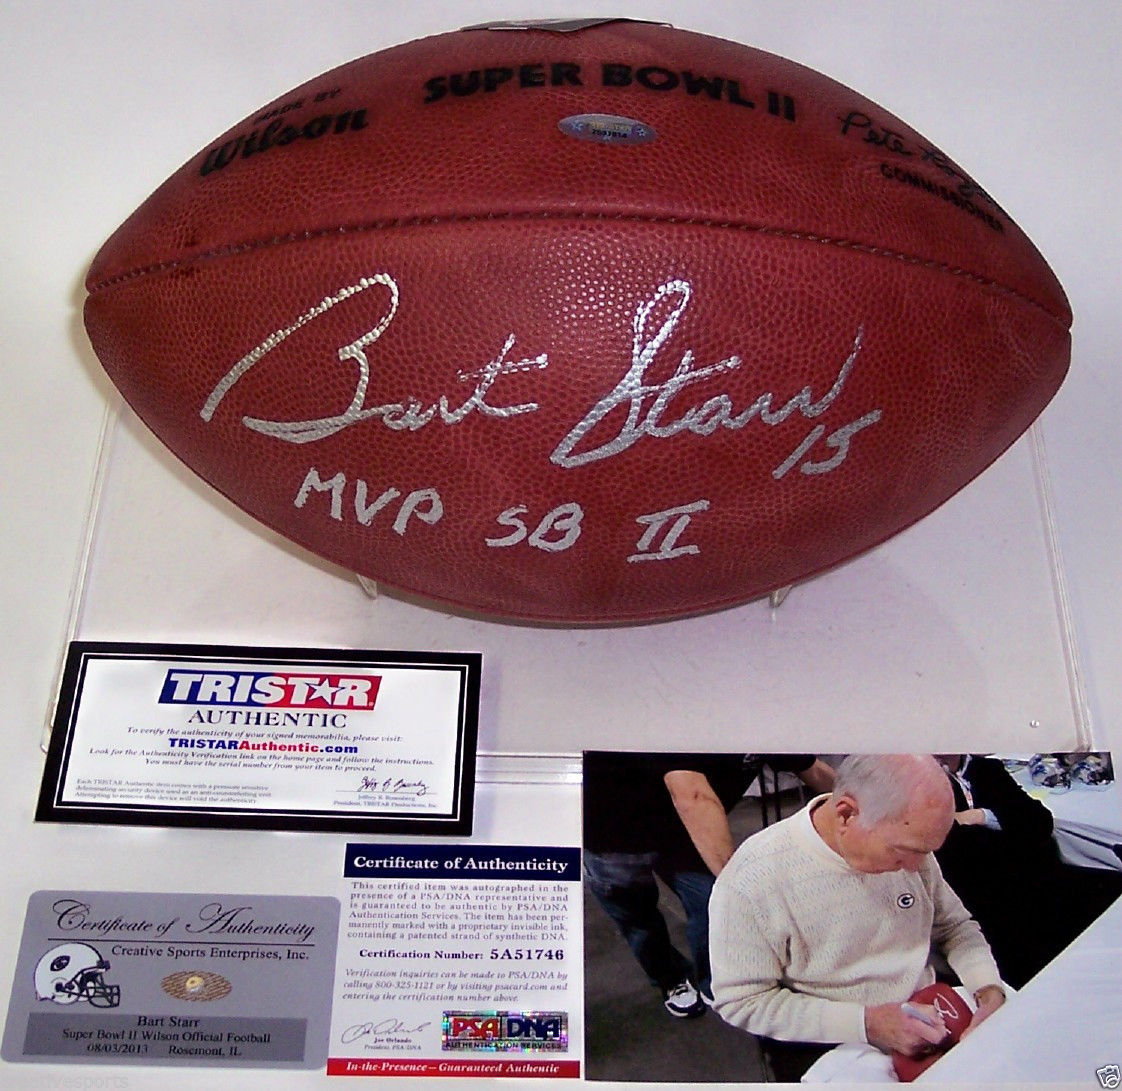 Bart Starr Autographed Football Bart Starr Signed Football